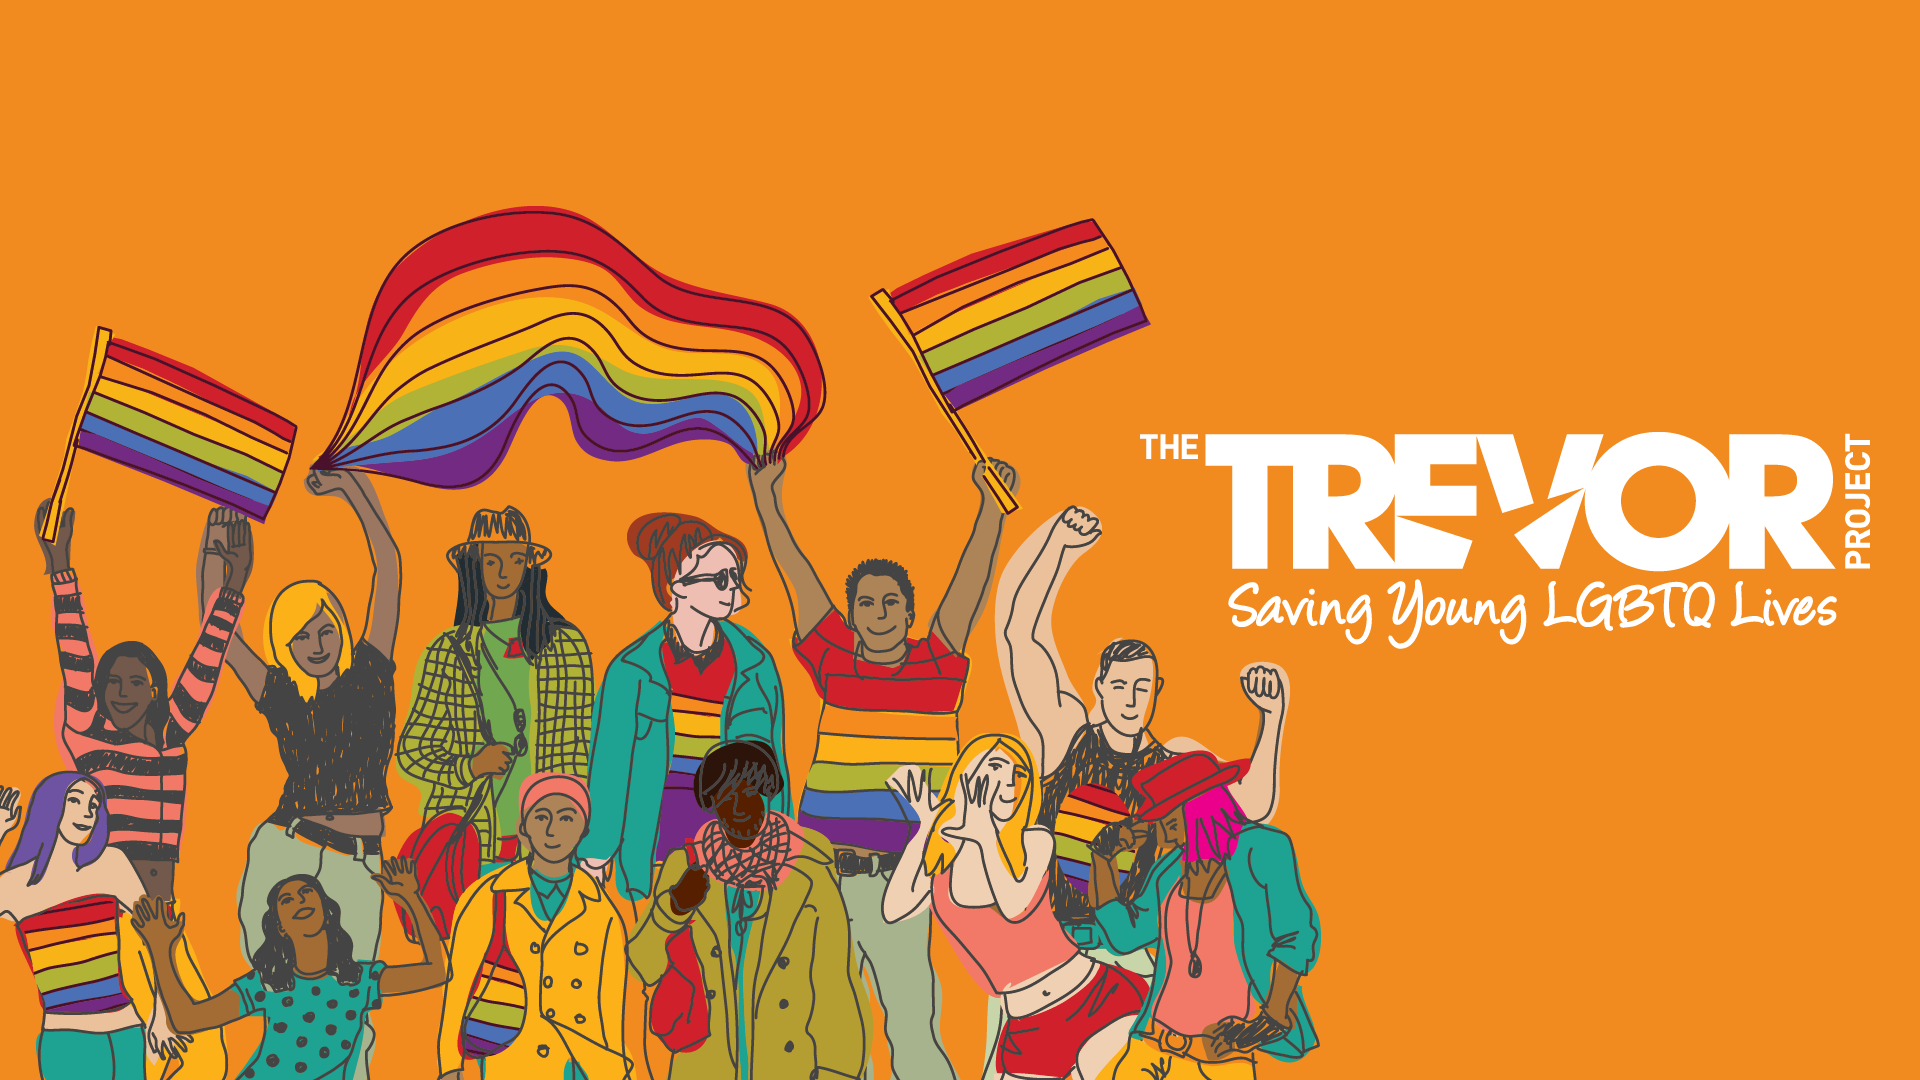 Warmlines: TTP -The Trevor Project - Saving Young LGBTQ Lives – (866) 488-7388 -Weekdays and Weekends